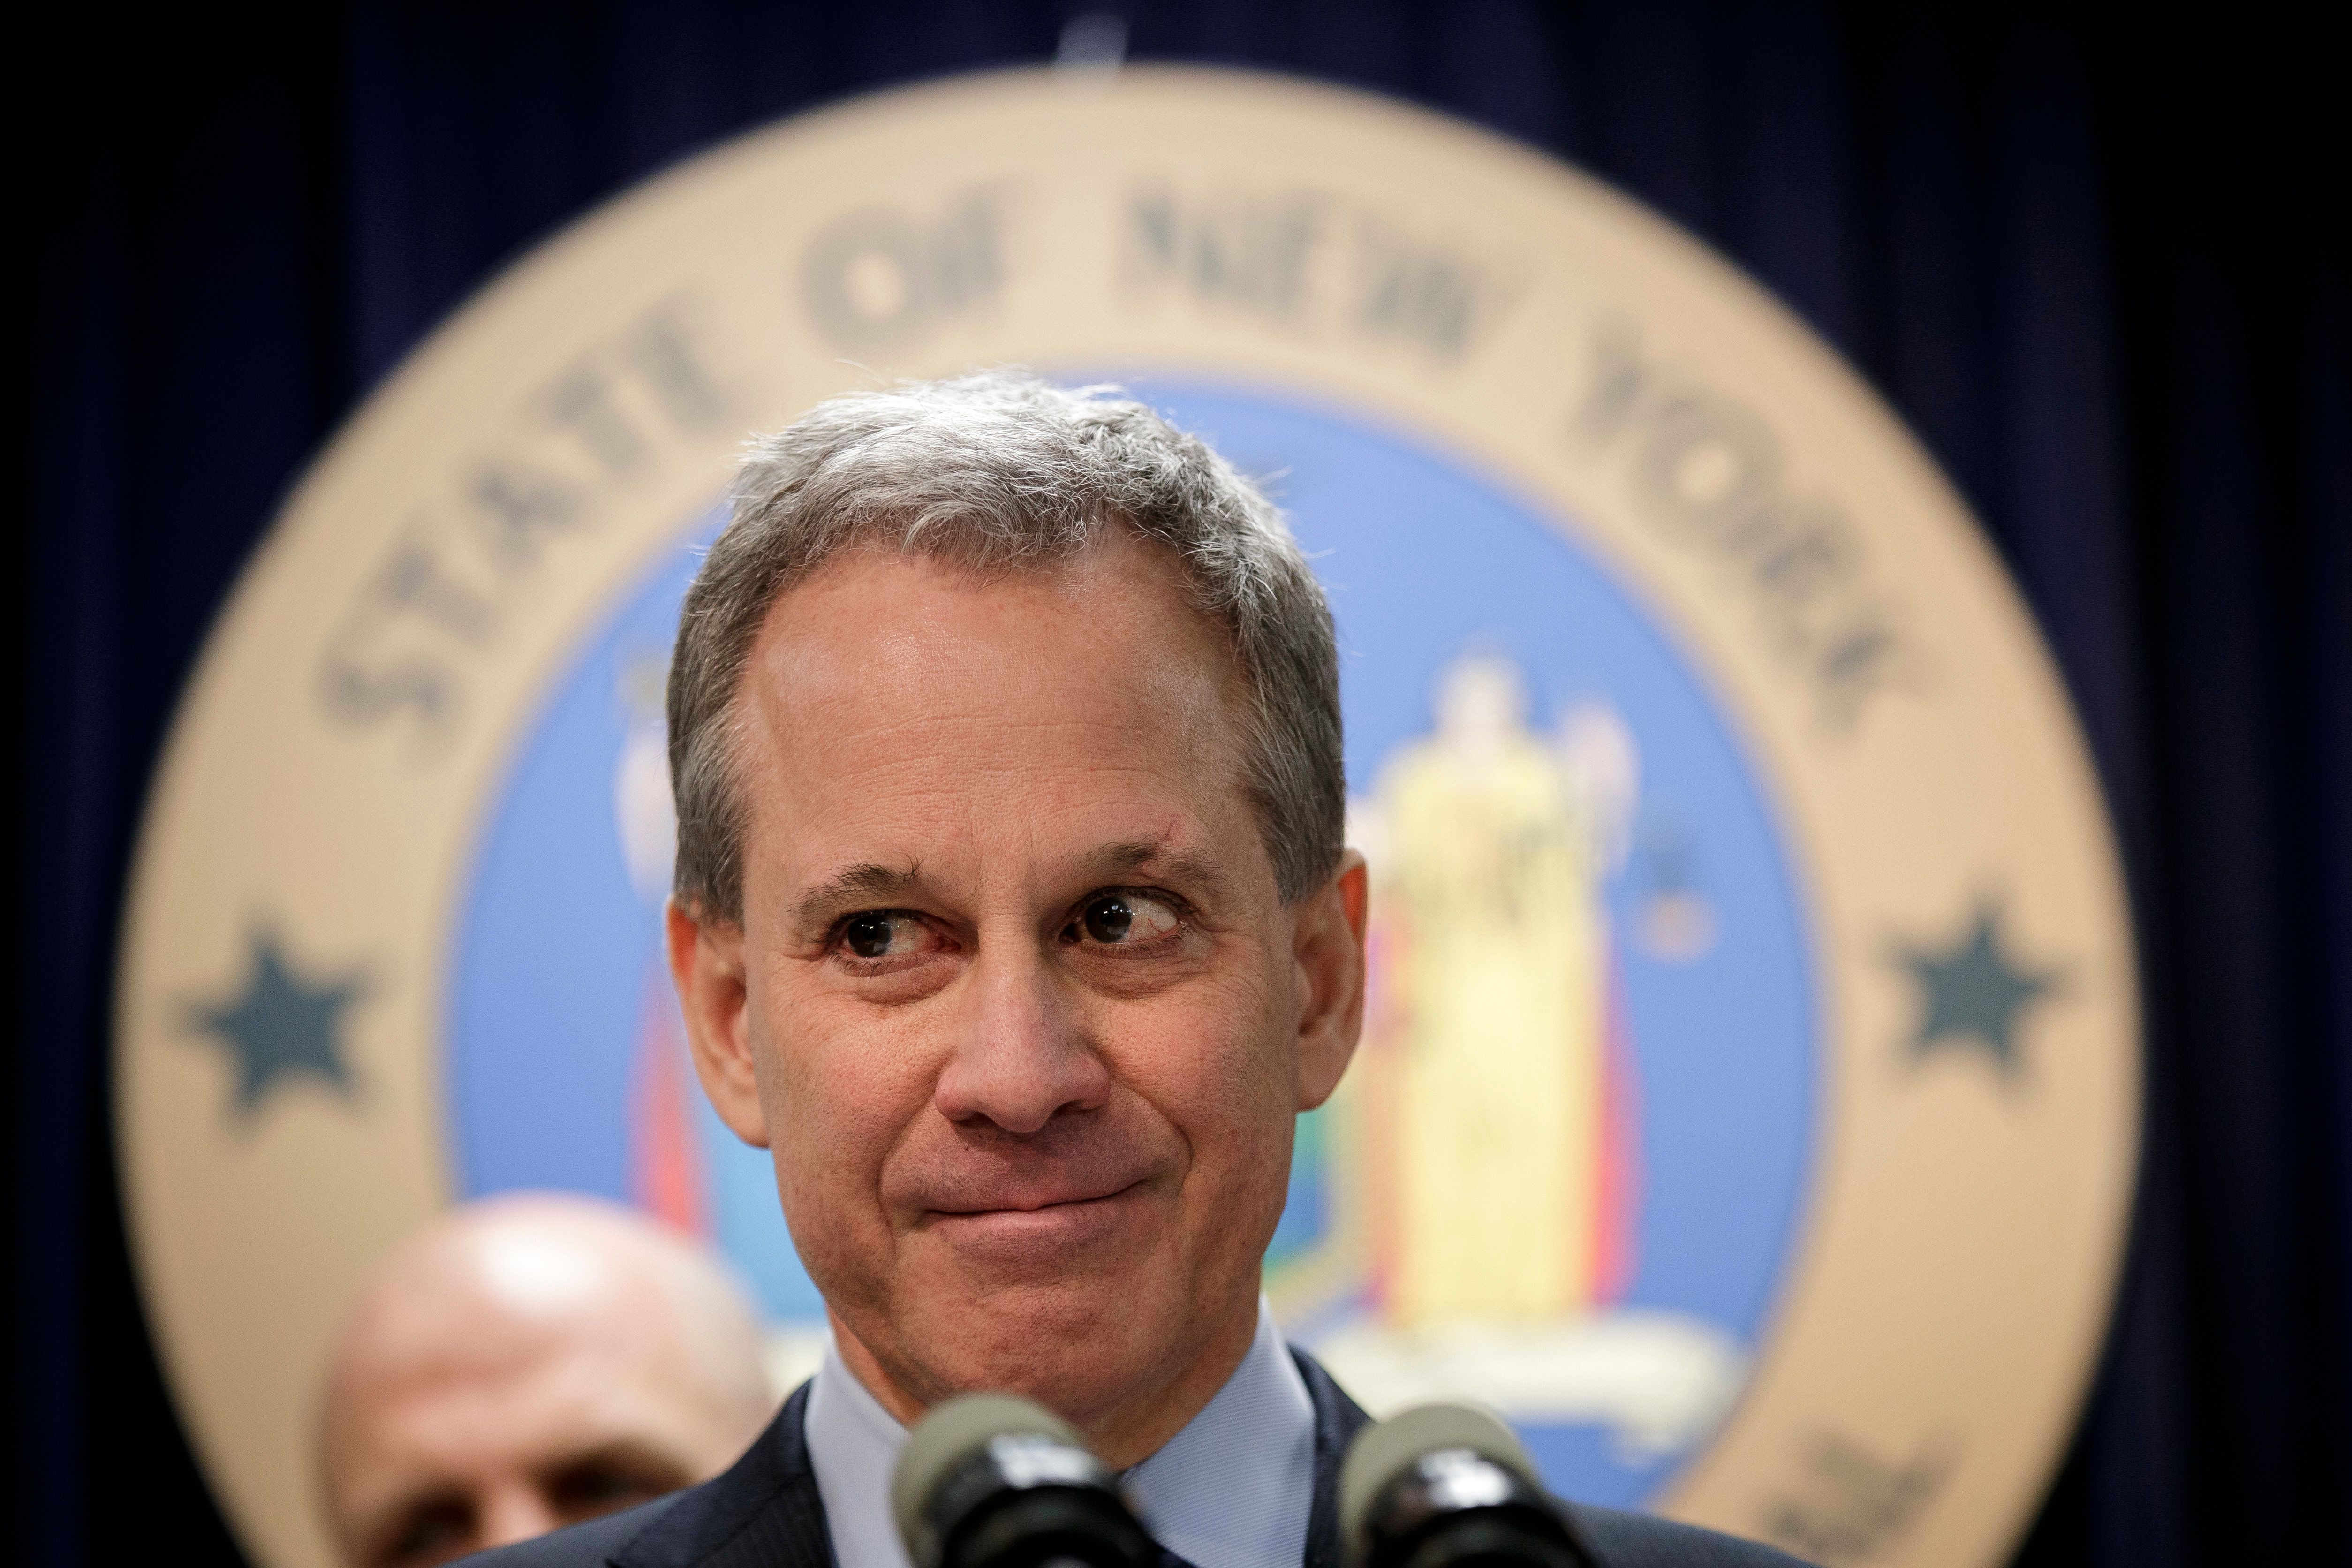 NEW YORK, NY - MARCH 15:  New York state Attorney General Eric Schneiderman takes questions during a news conference to announce the take down of a large organized crime ring, March 15, 2017 in New York City. The investigation, dubbed Operation Sticky Fingers, has resulted in charges against 12 people accused of stealing more than $12 million in high-end electronics and supplies from retail stores and reselling the merchandise on Amazon and eBay. (Photo by Drew Angerer/Getty Images)